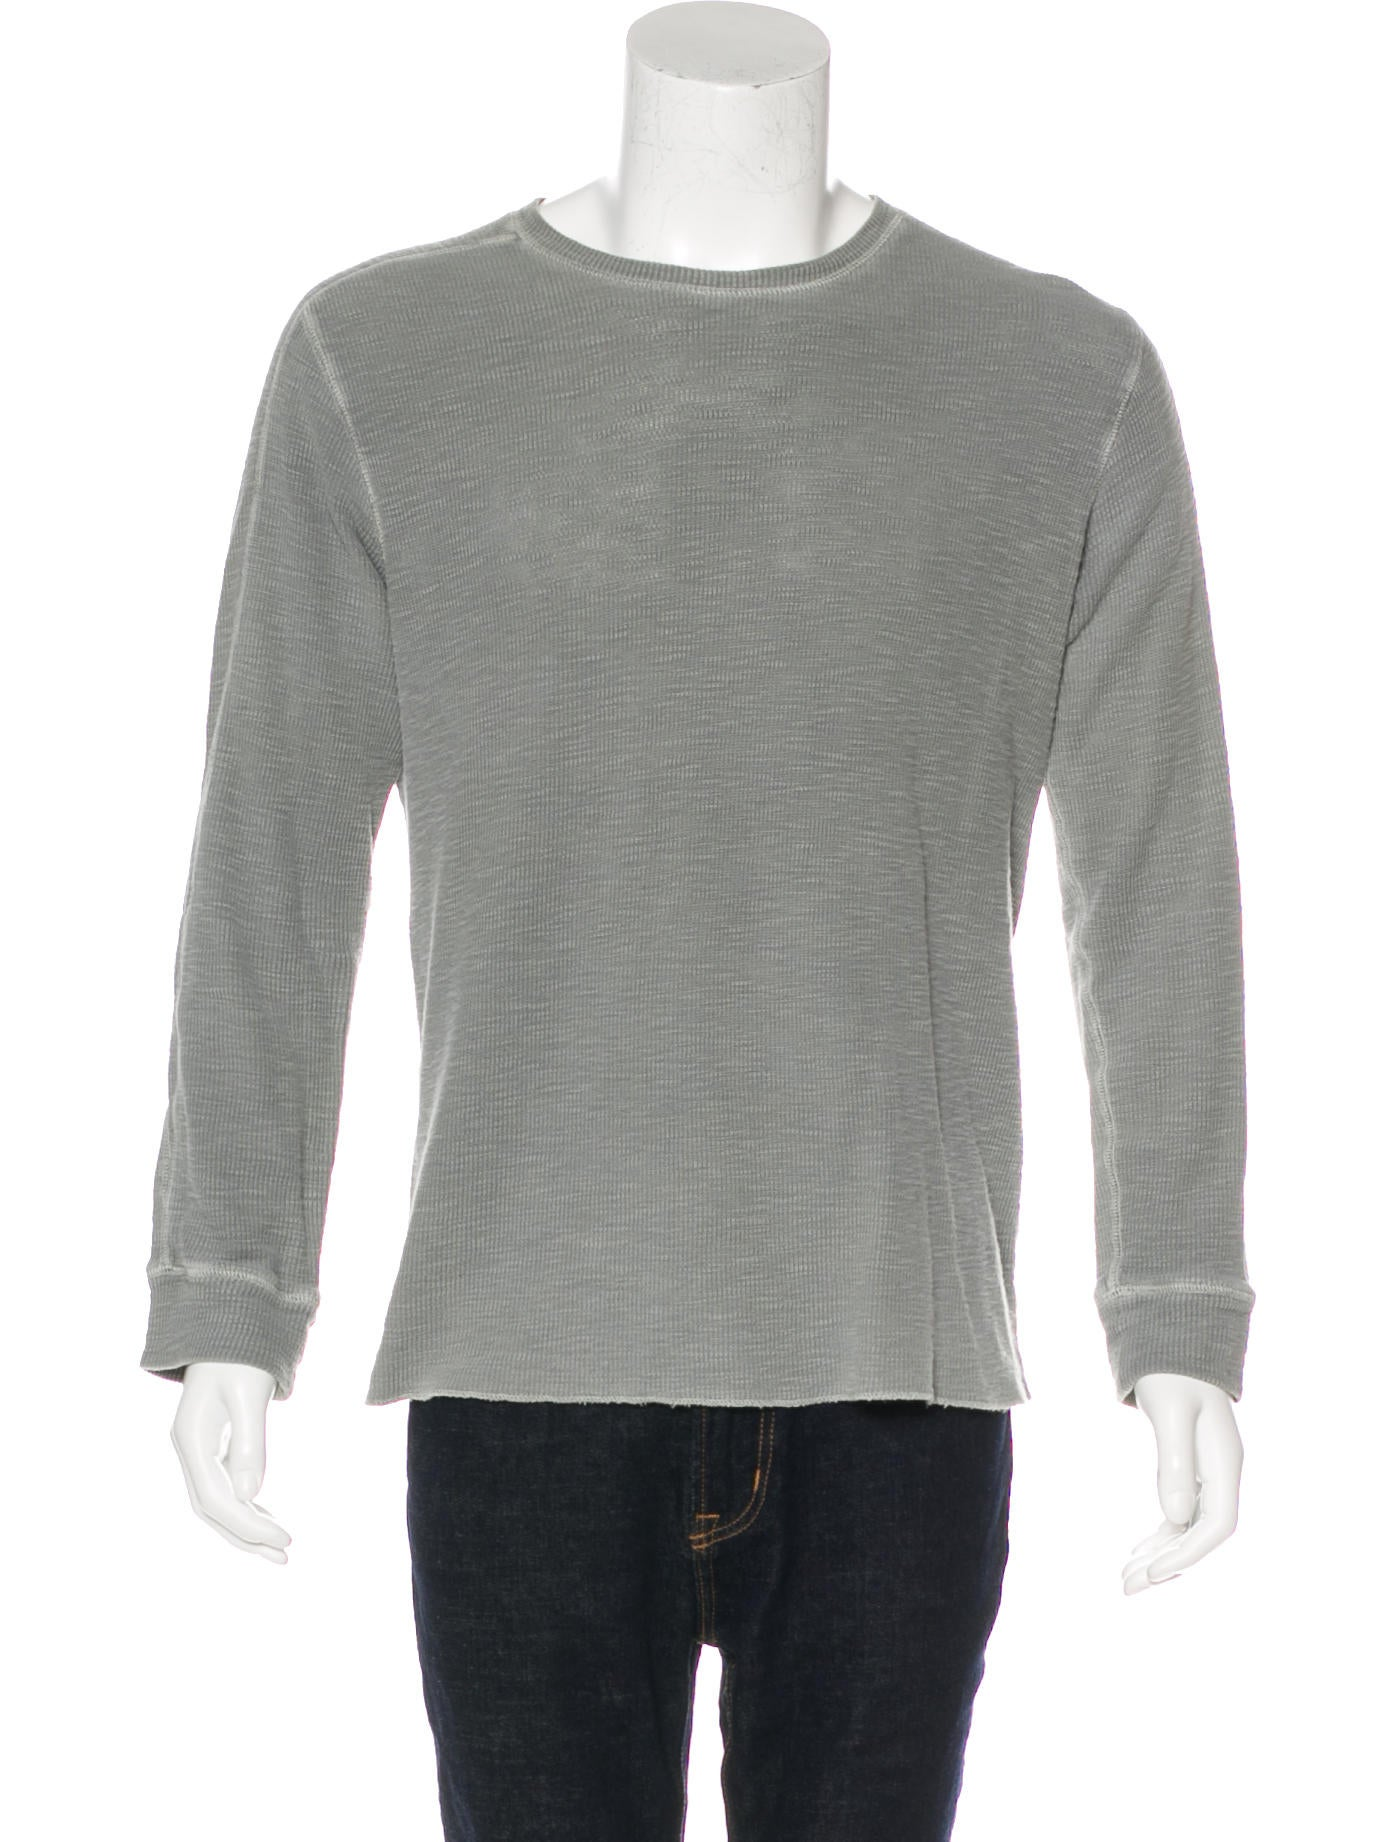 Rrl Co Long Sleeve Thermal T Shirt Clothing: thermal t shirt long sleeve